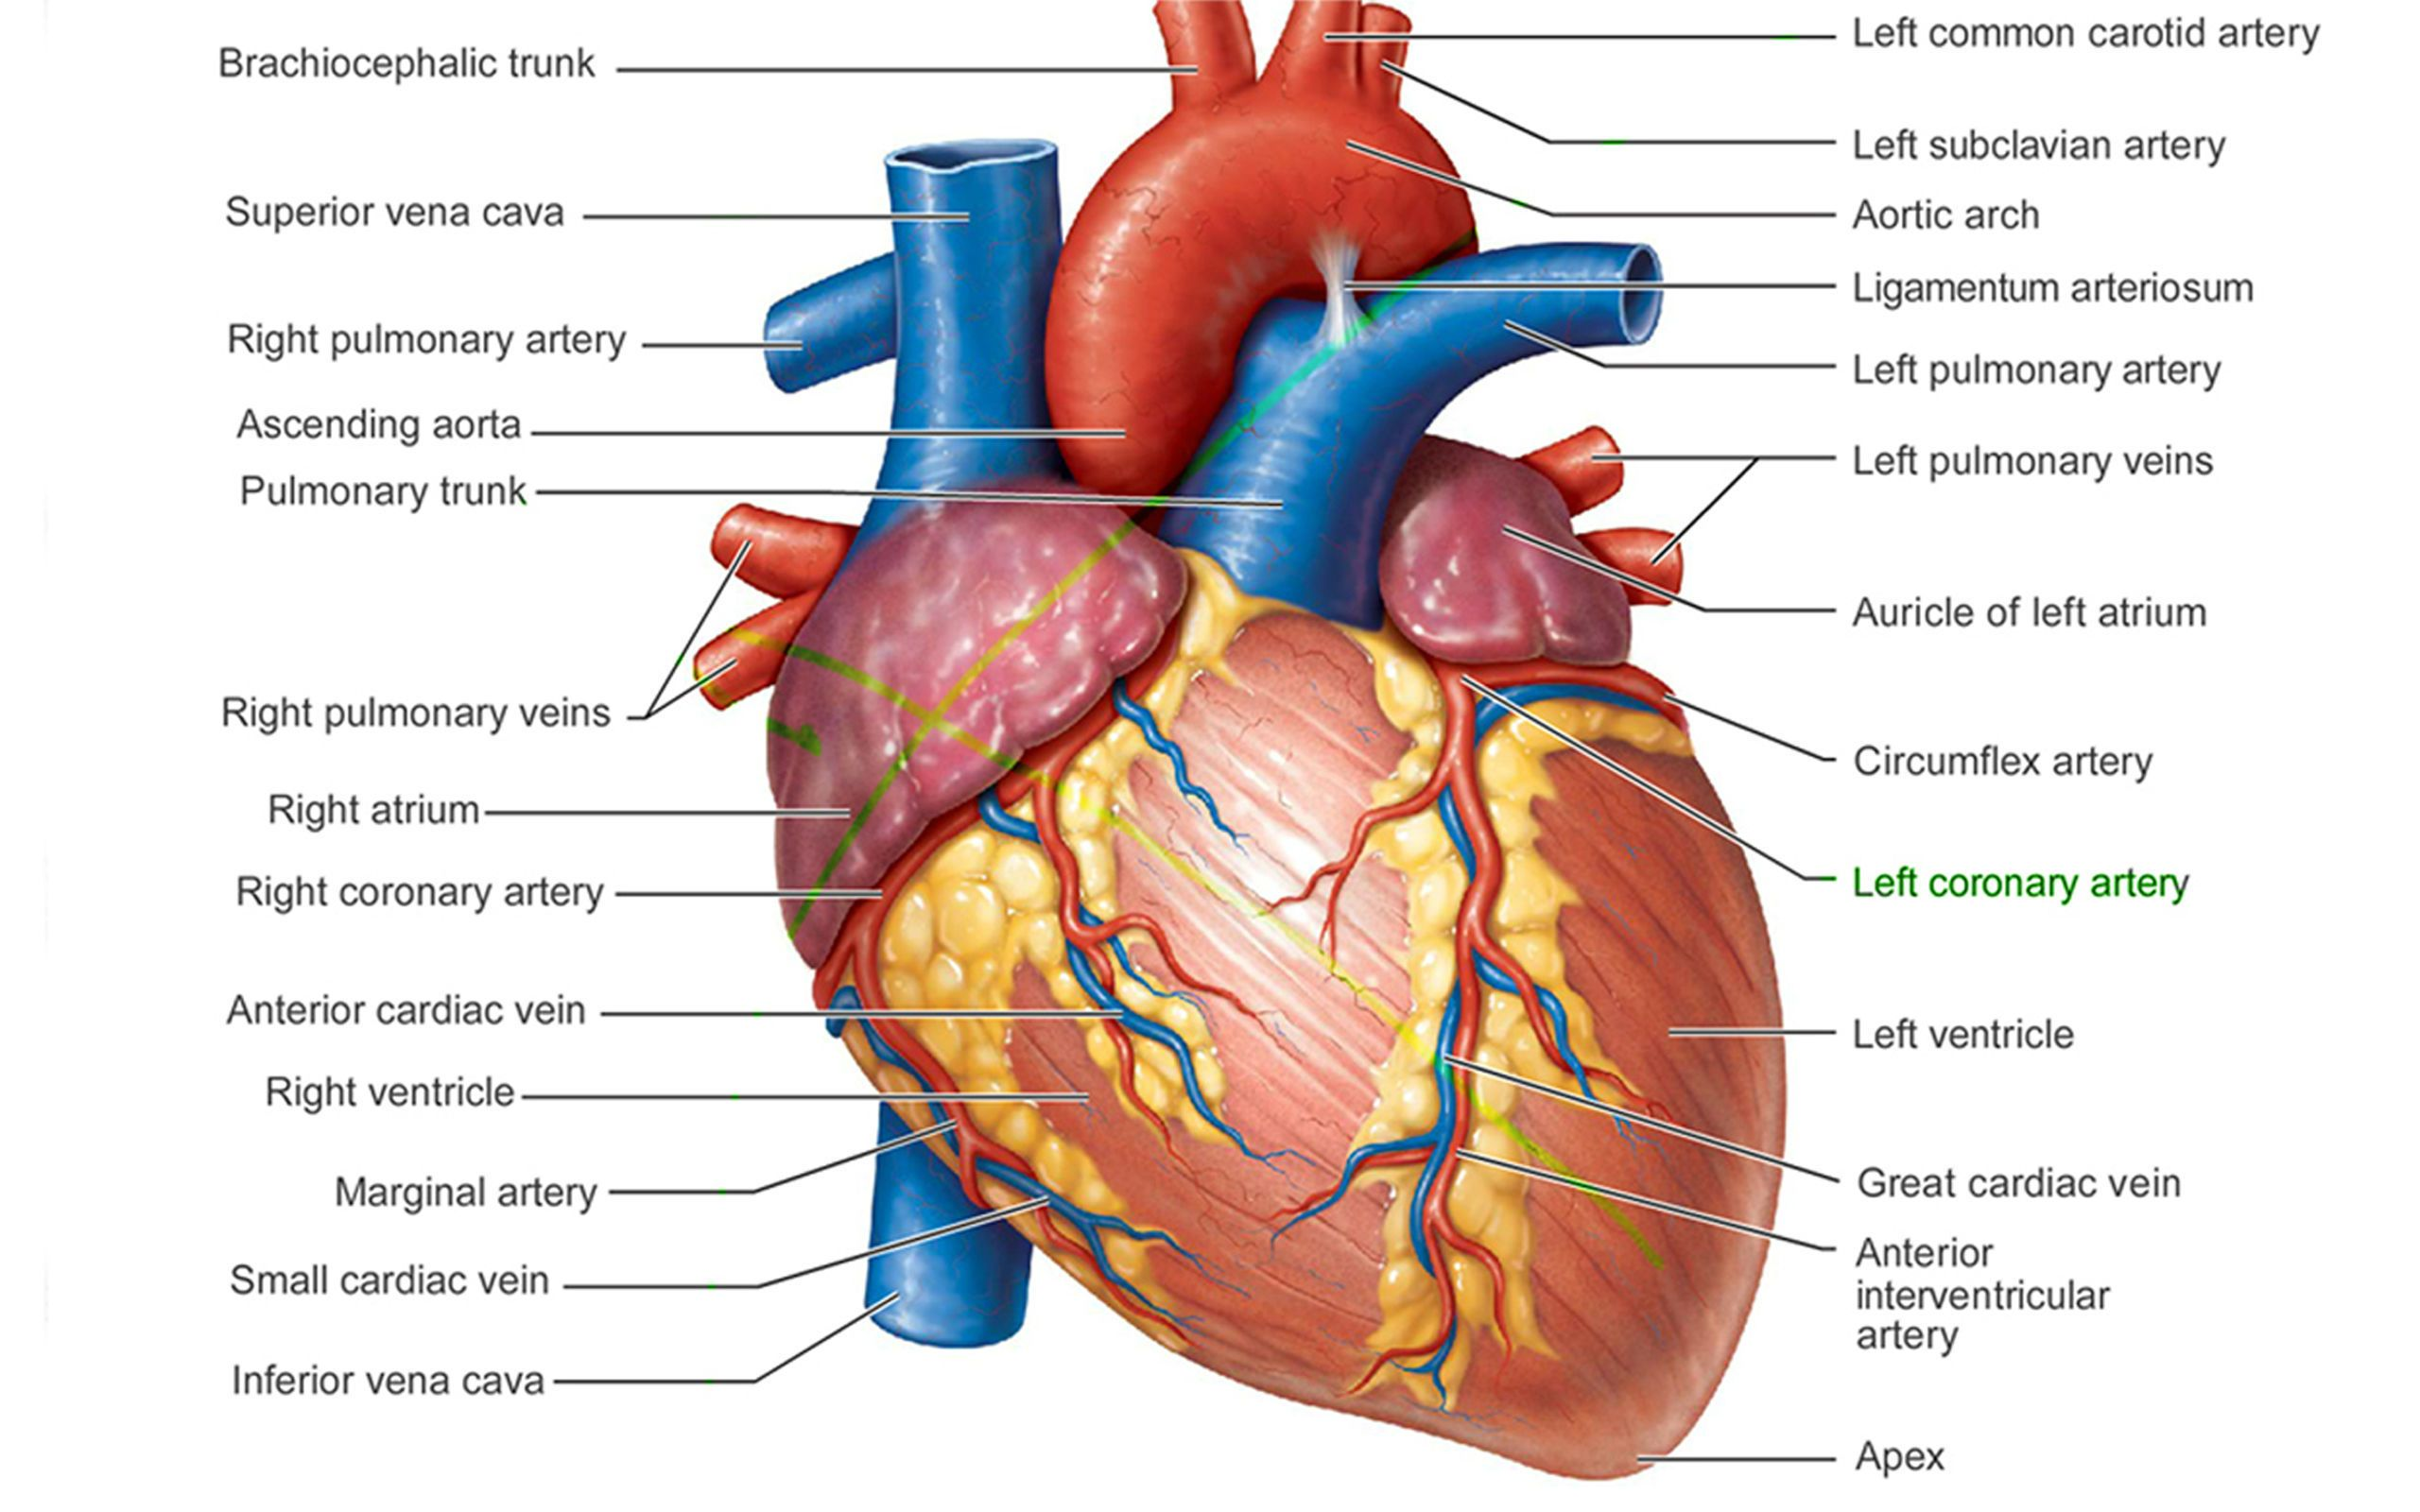 heart diagram labeled draw and label human anatomy heart anatomyheart diagram labeled draw and label human anatomy heart anatomy drawing with label the